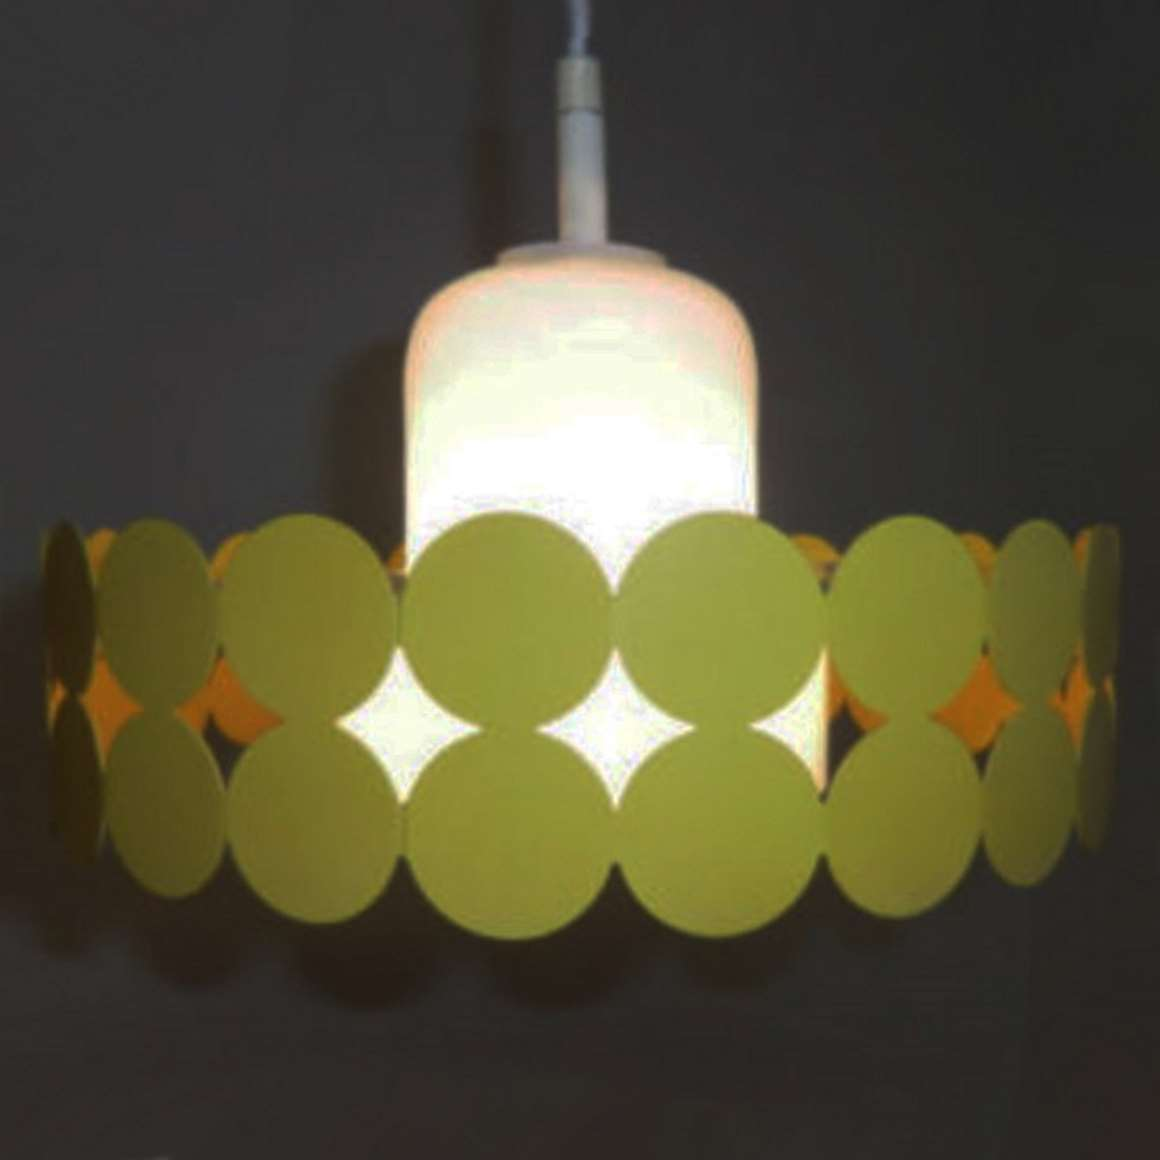 Doria Metal Pendant Lamp olive green opal glass circles metal iron round 7 layers 1960s 1970s MCM Germany